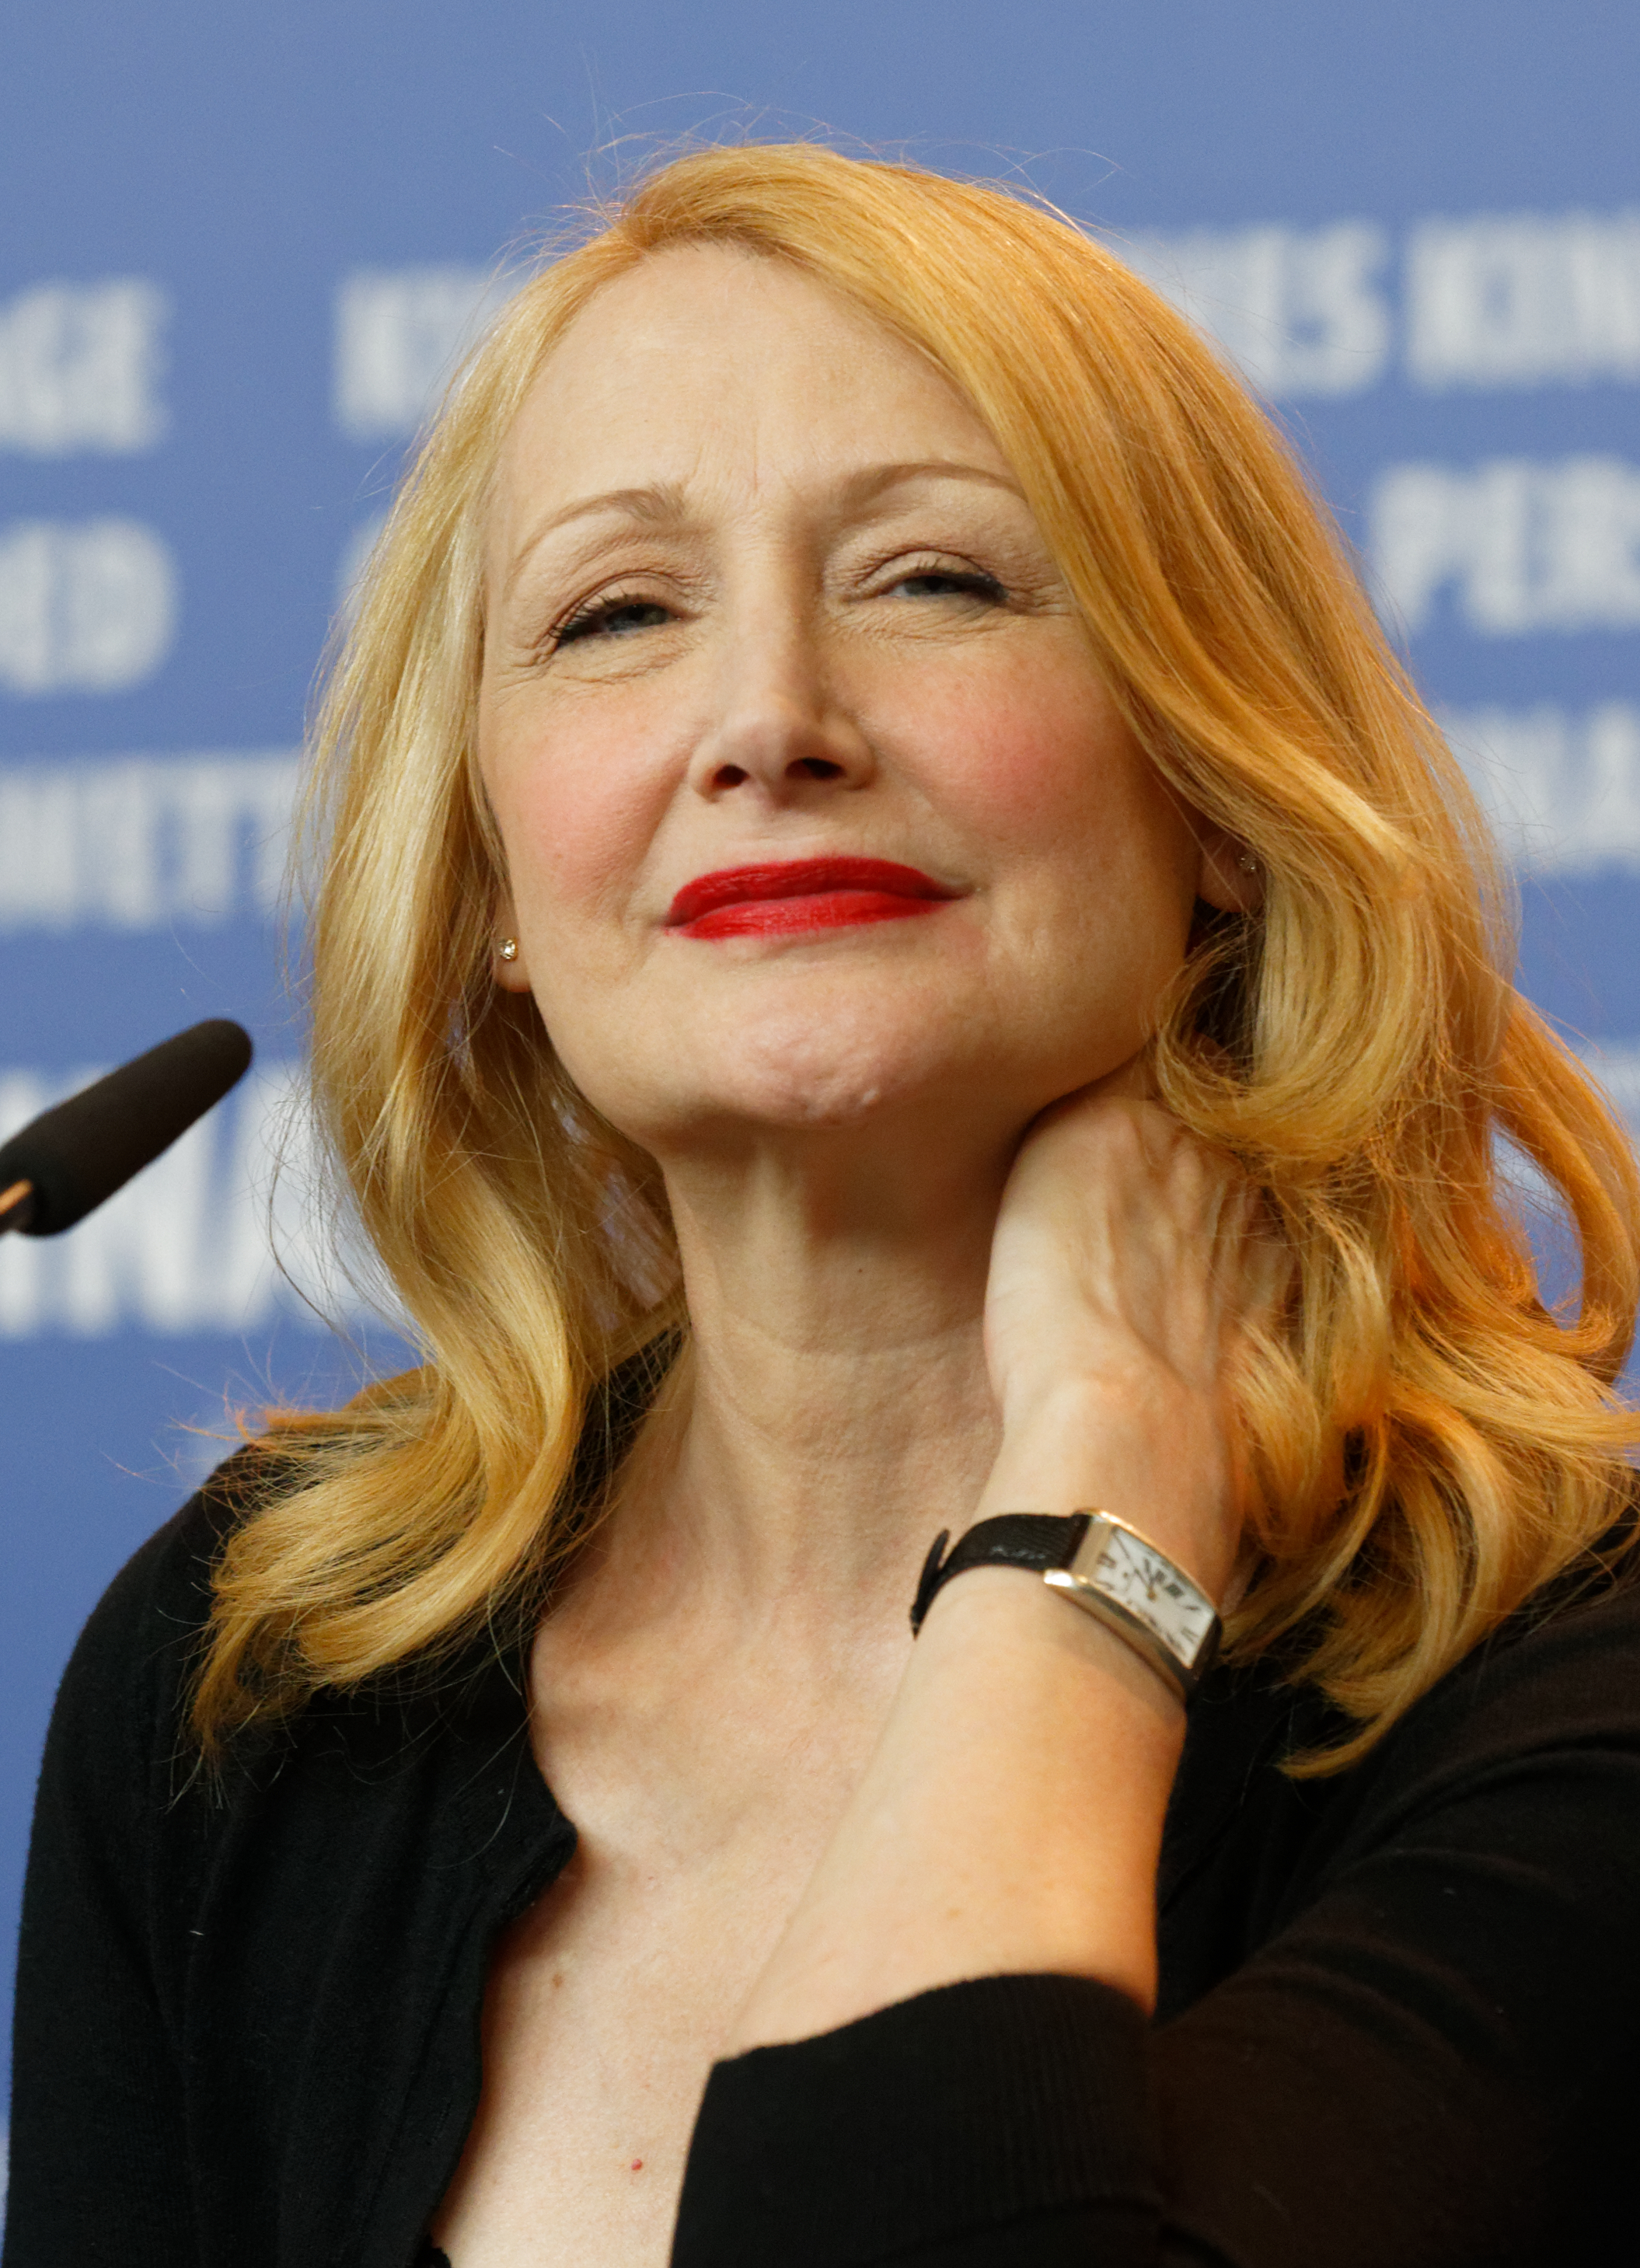 Cameron Richardson Movies And Tv Shows patricia clarkson - wikipedia